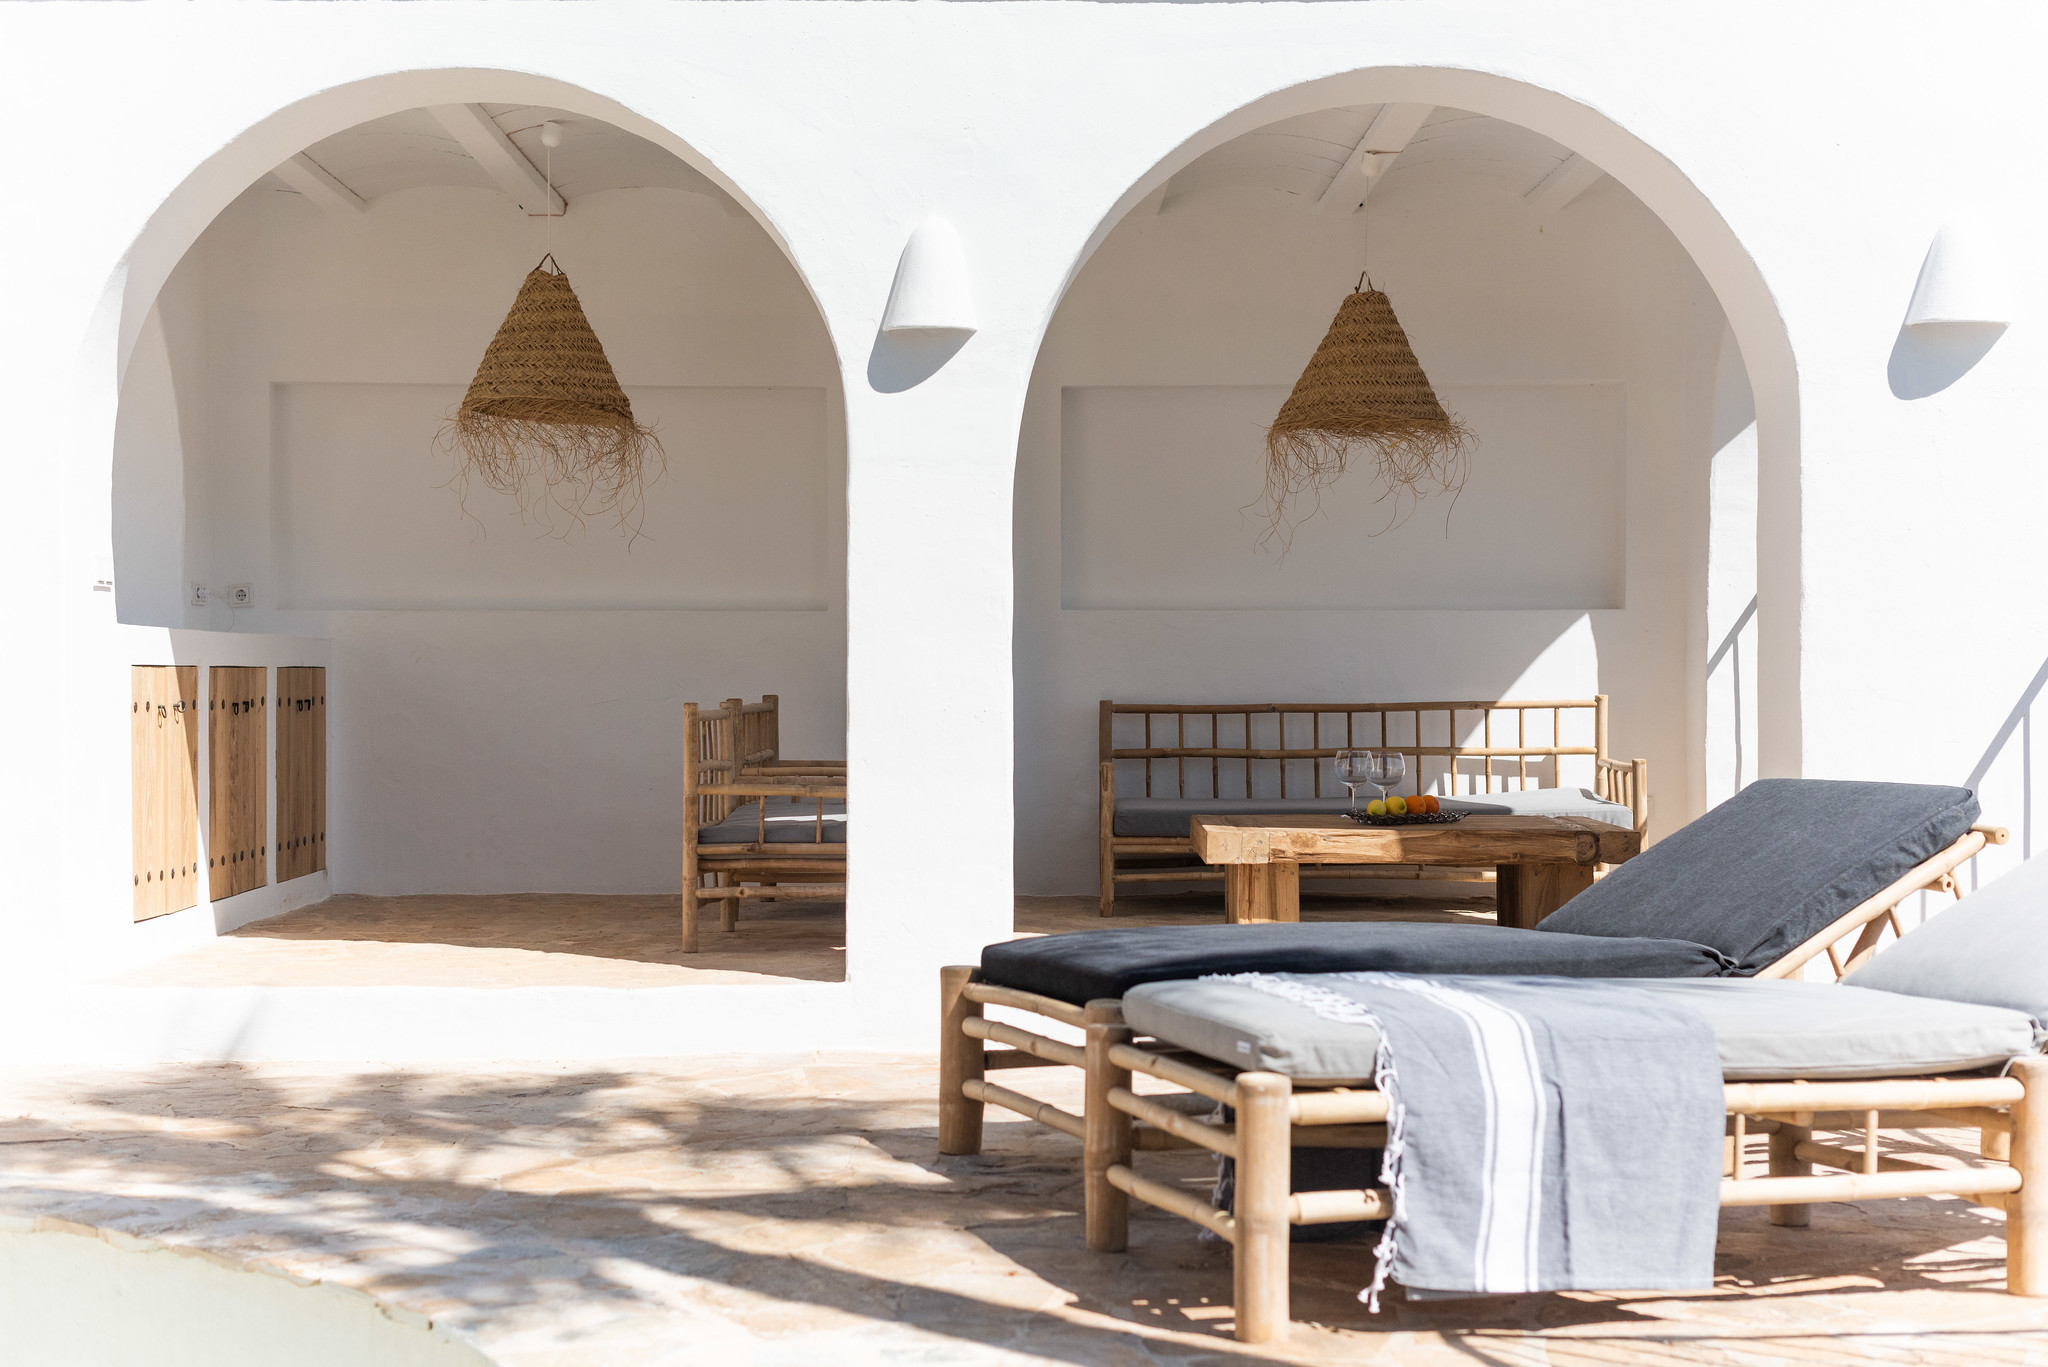 https://www.white-ibiza.com/wp-content/uploads/2020/05/white-ibiza-villas-can-cactus-terrace-sunloungers.jpg